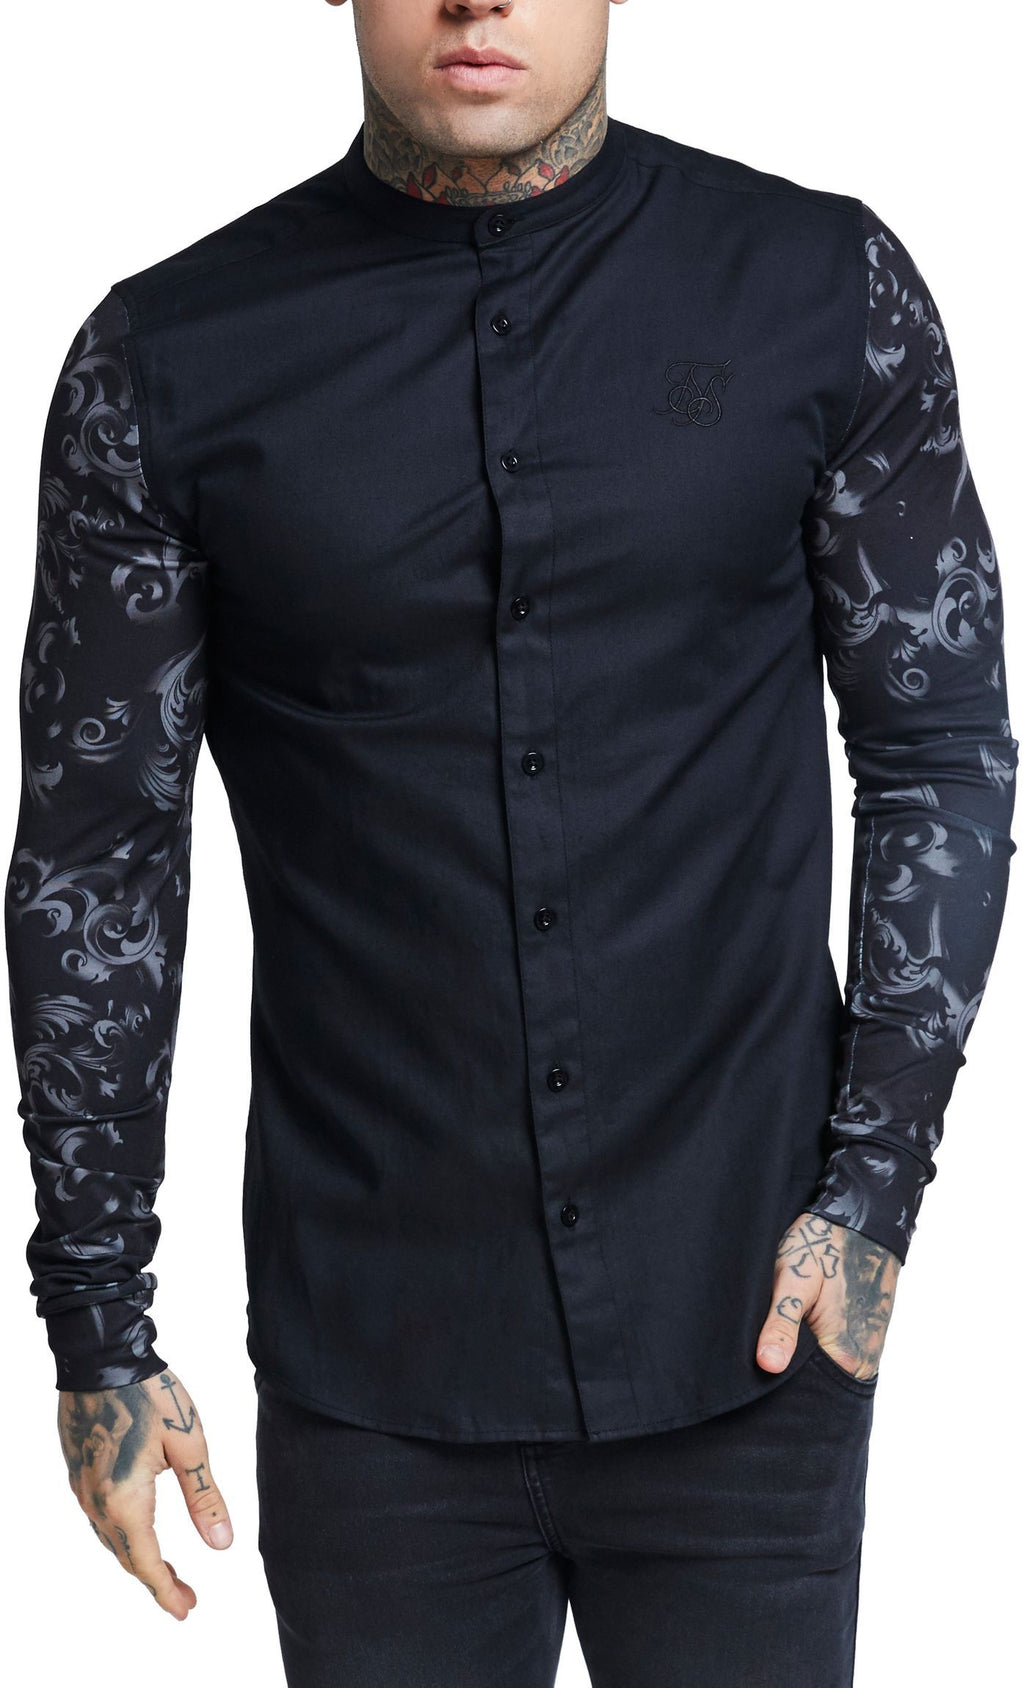 Sik Silk Contrast Oxford Long Sleeve Shirt Black/Venetian Black